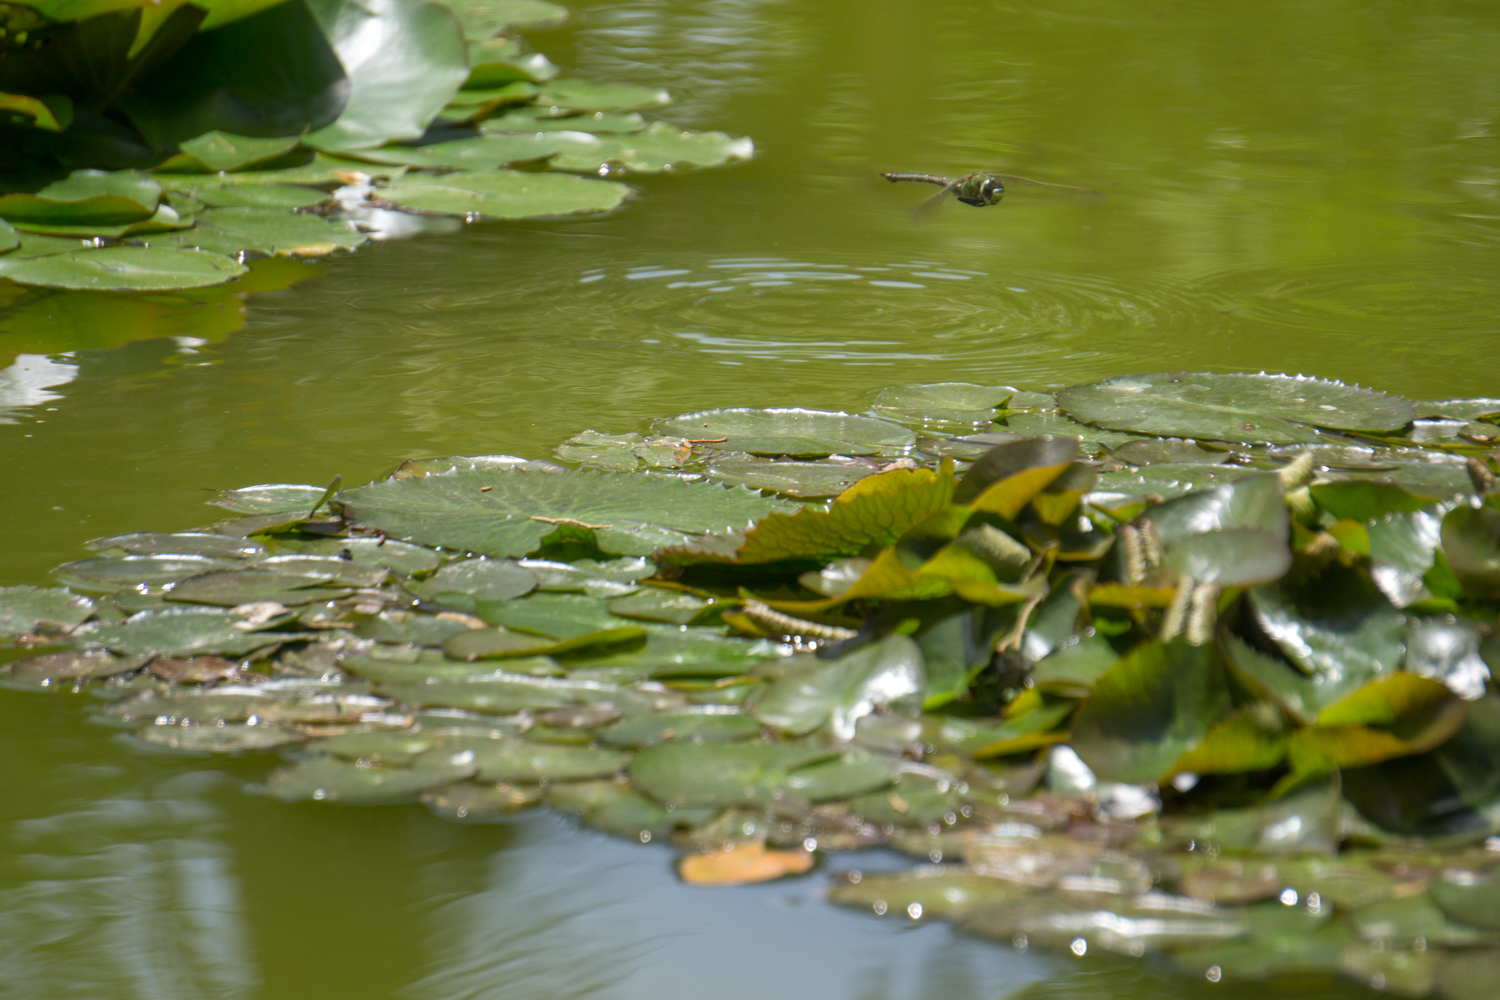 A dragonfly poking around for something to do in a pond